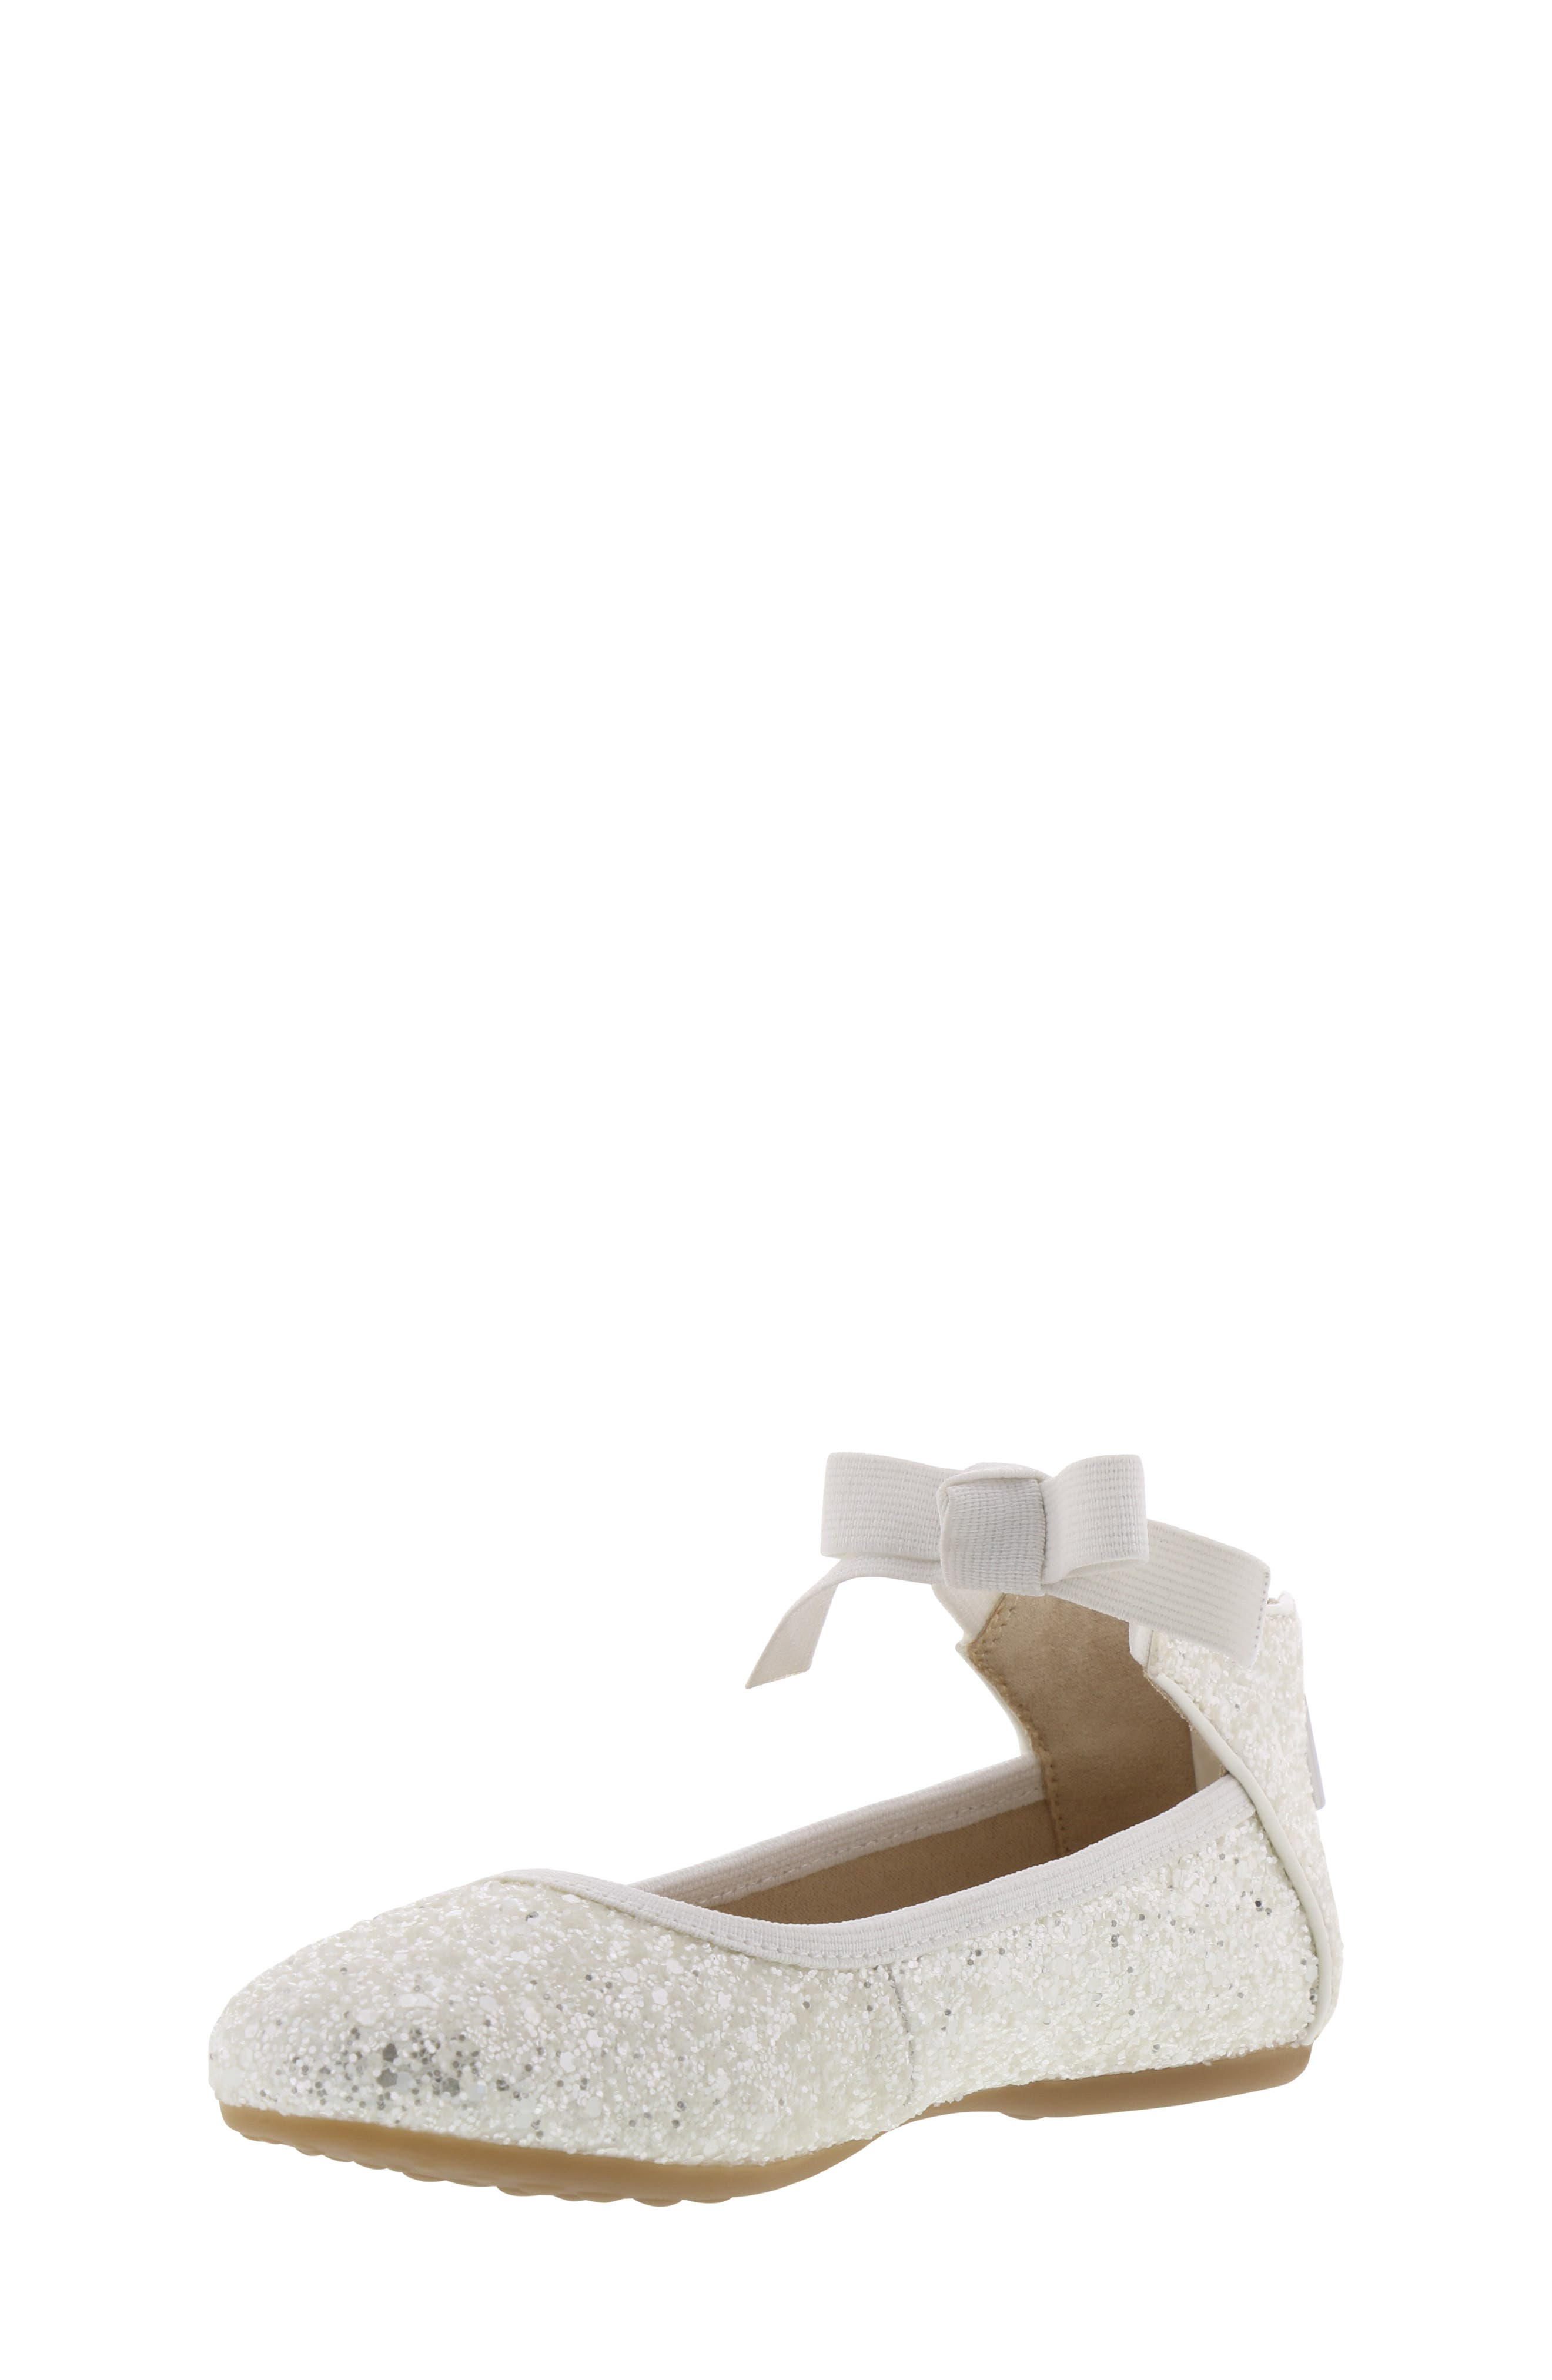 KENNETH COLE NEW YORK, Rose Bow Ballet Flat, Alternate thumbnail 9, color, WHITE SUGAR GLITTER